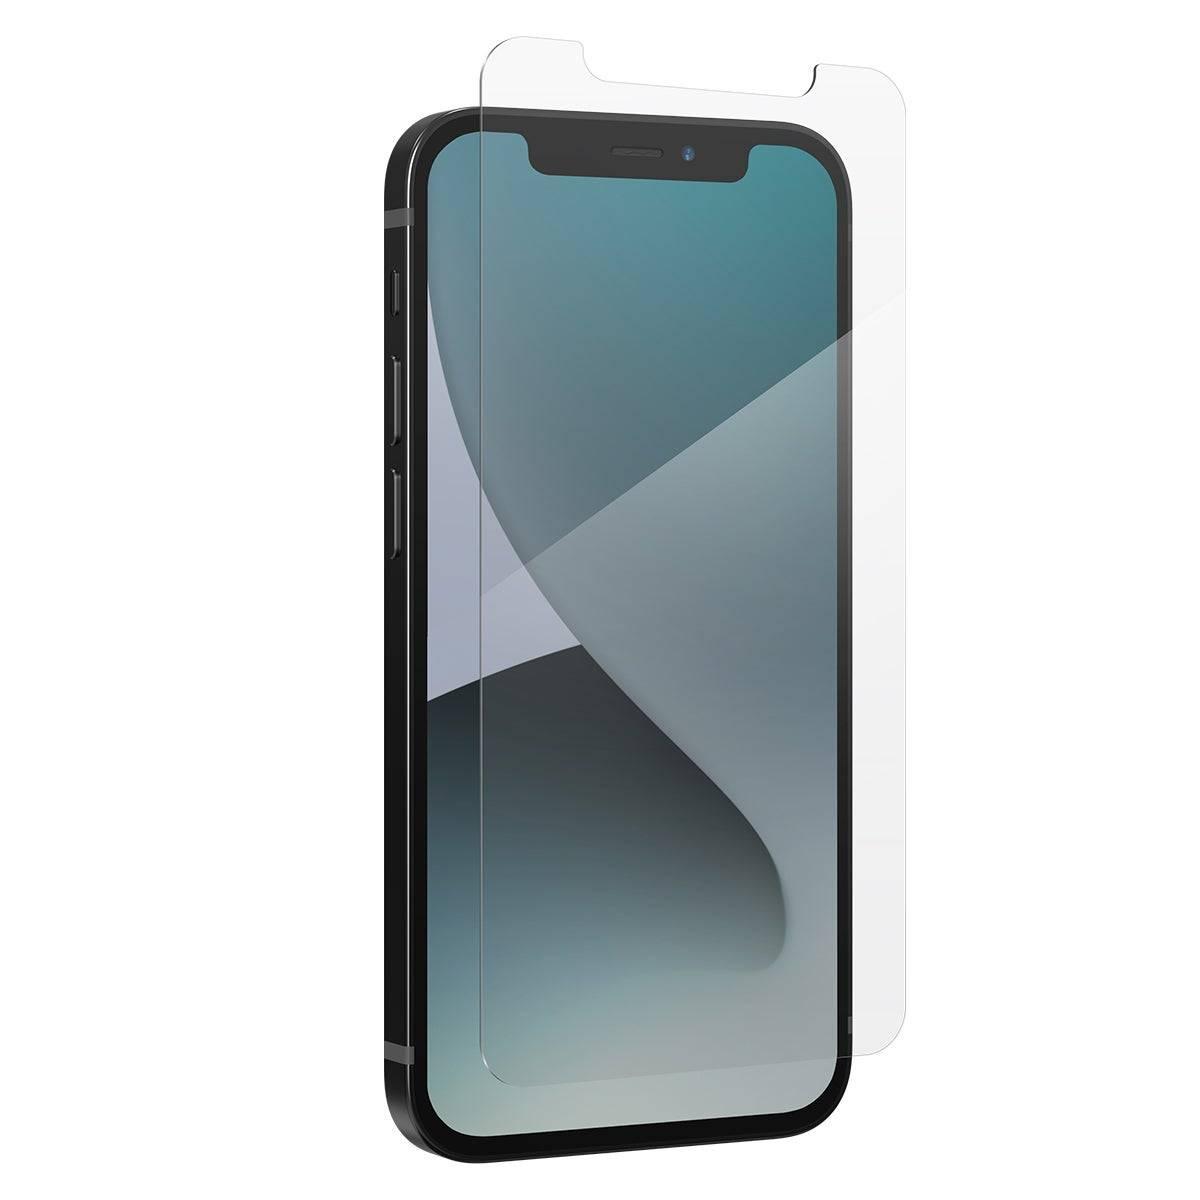 InvisibleShield Glass Elite+ for the Apple iPhone 12 Mini (Case Friendly)